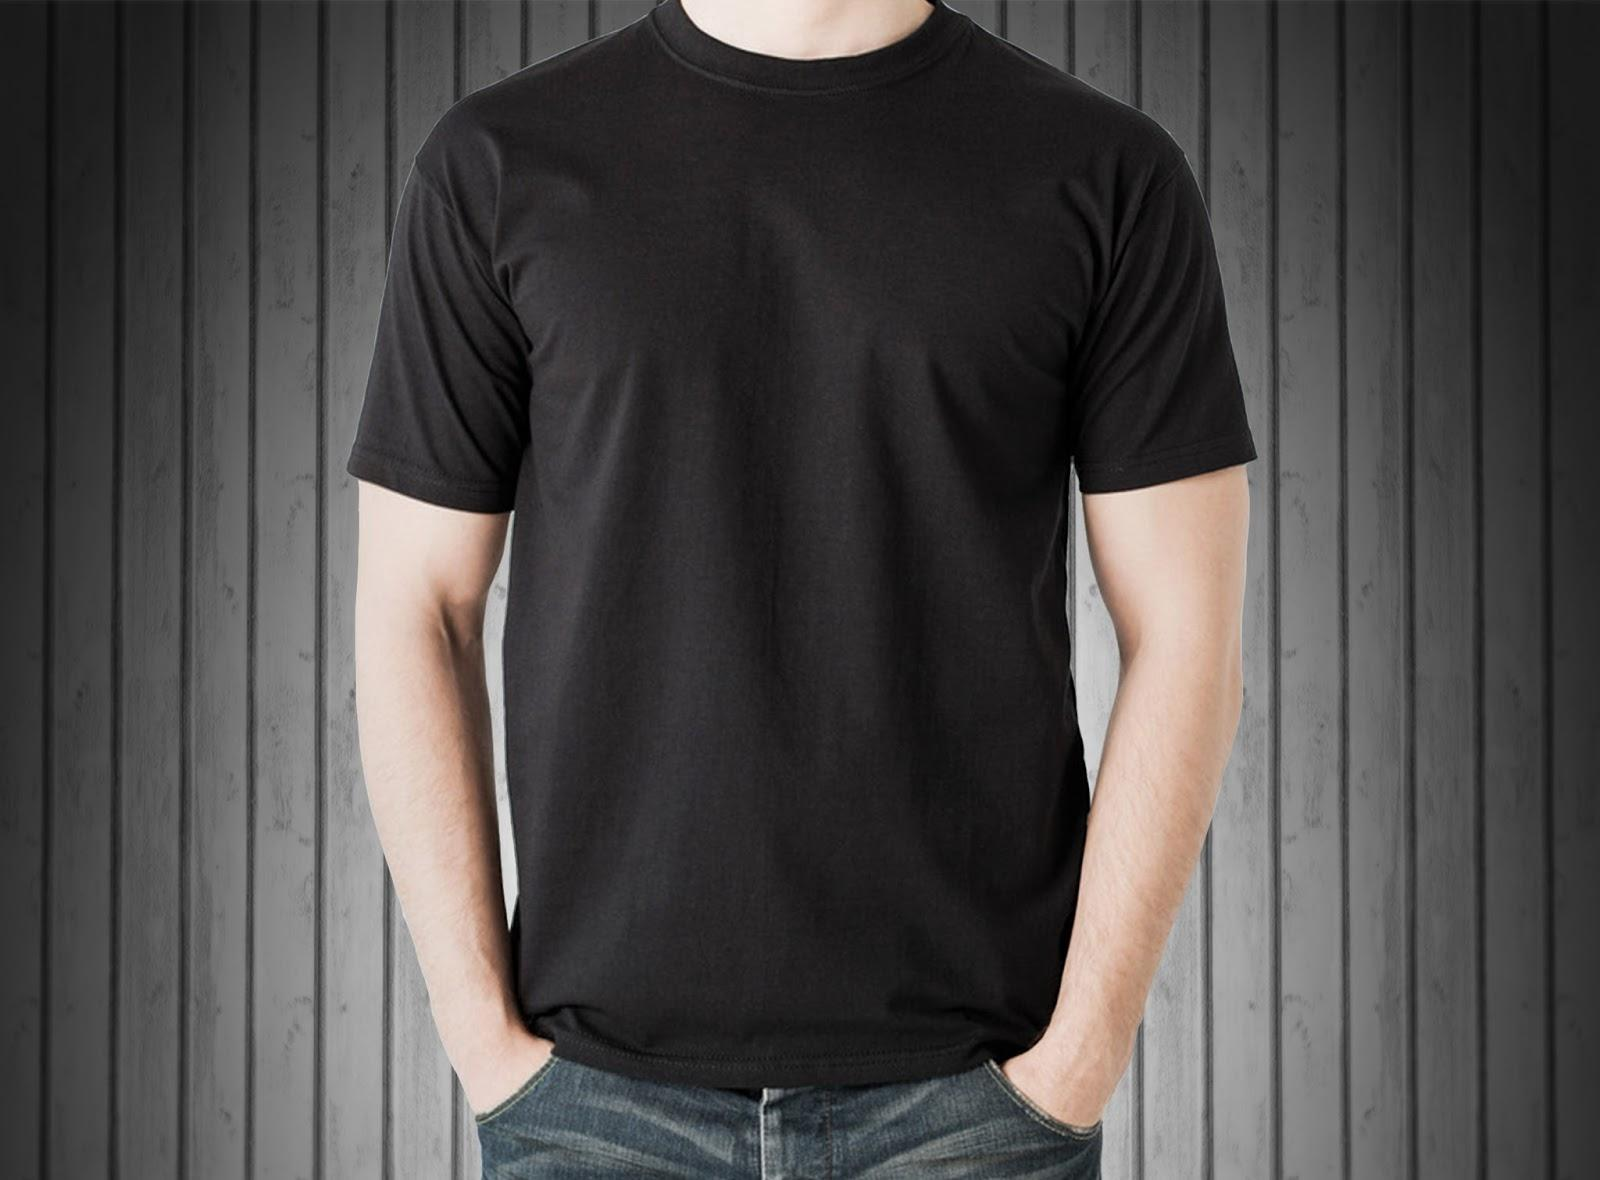 Download Mockup T Shirt Template